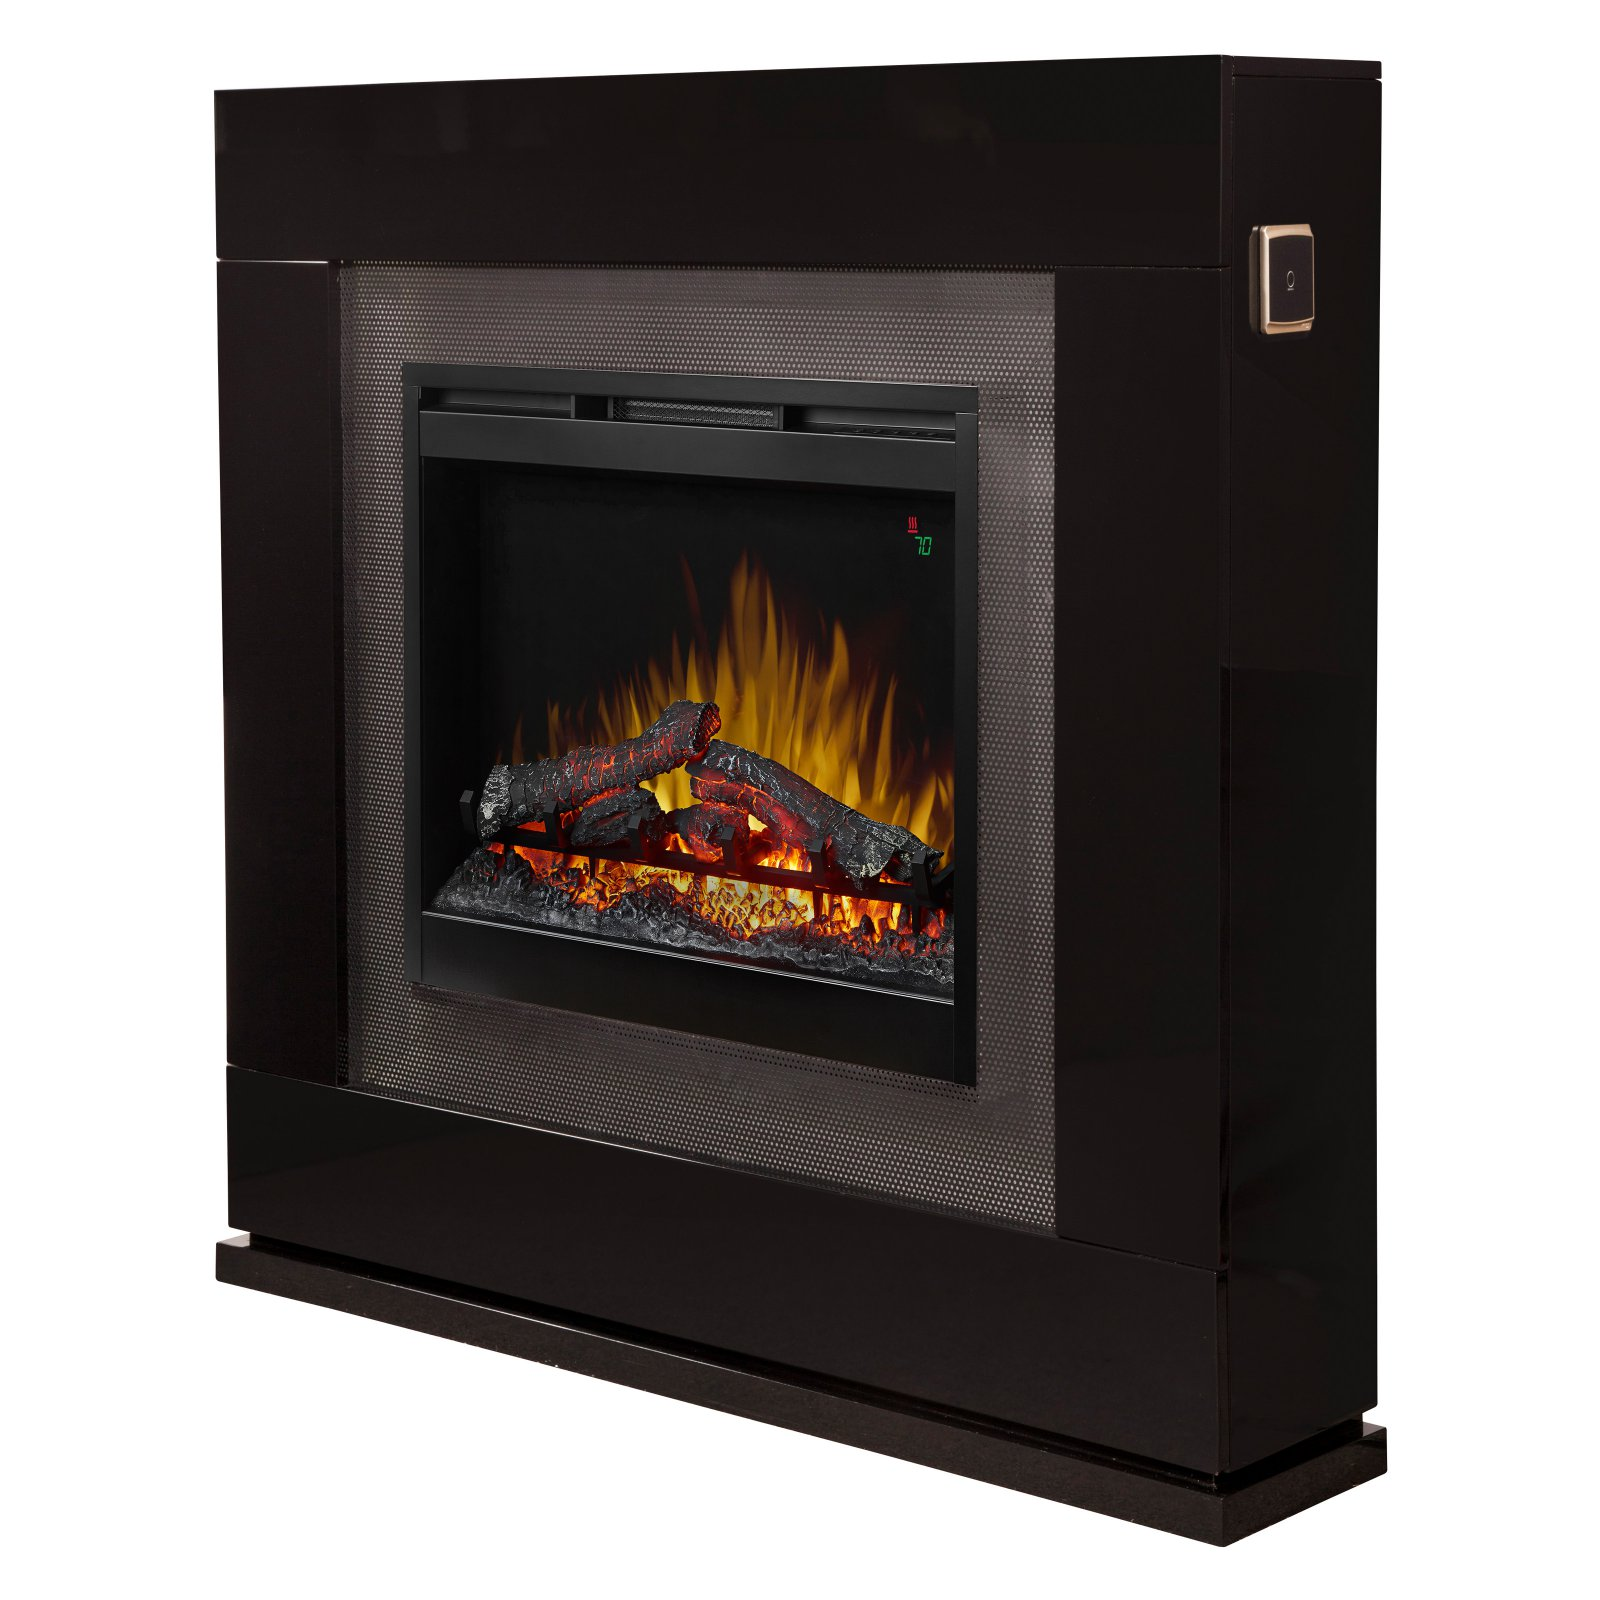 Dimplex Lukas Mantel Electric Fireplace With Logs, Black Gloss